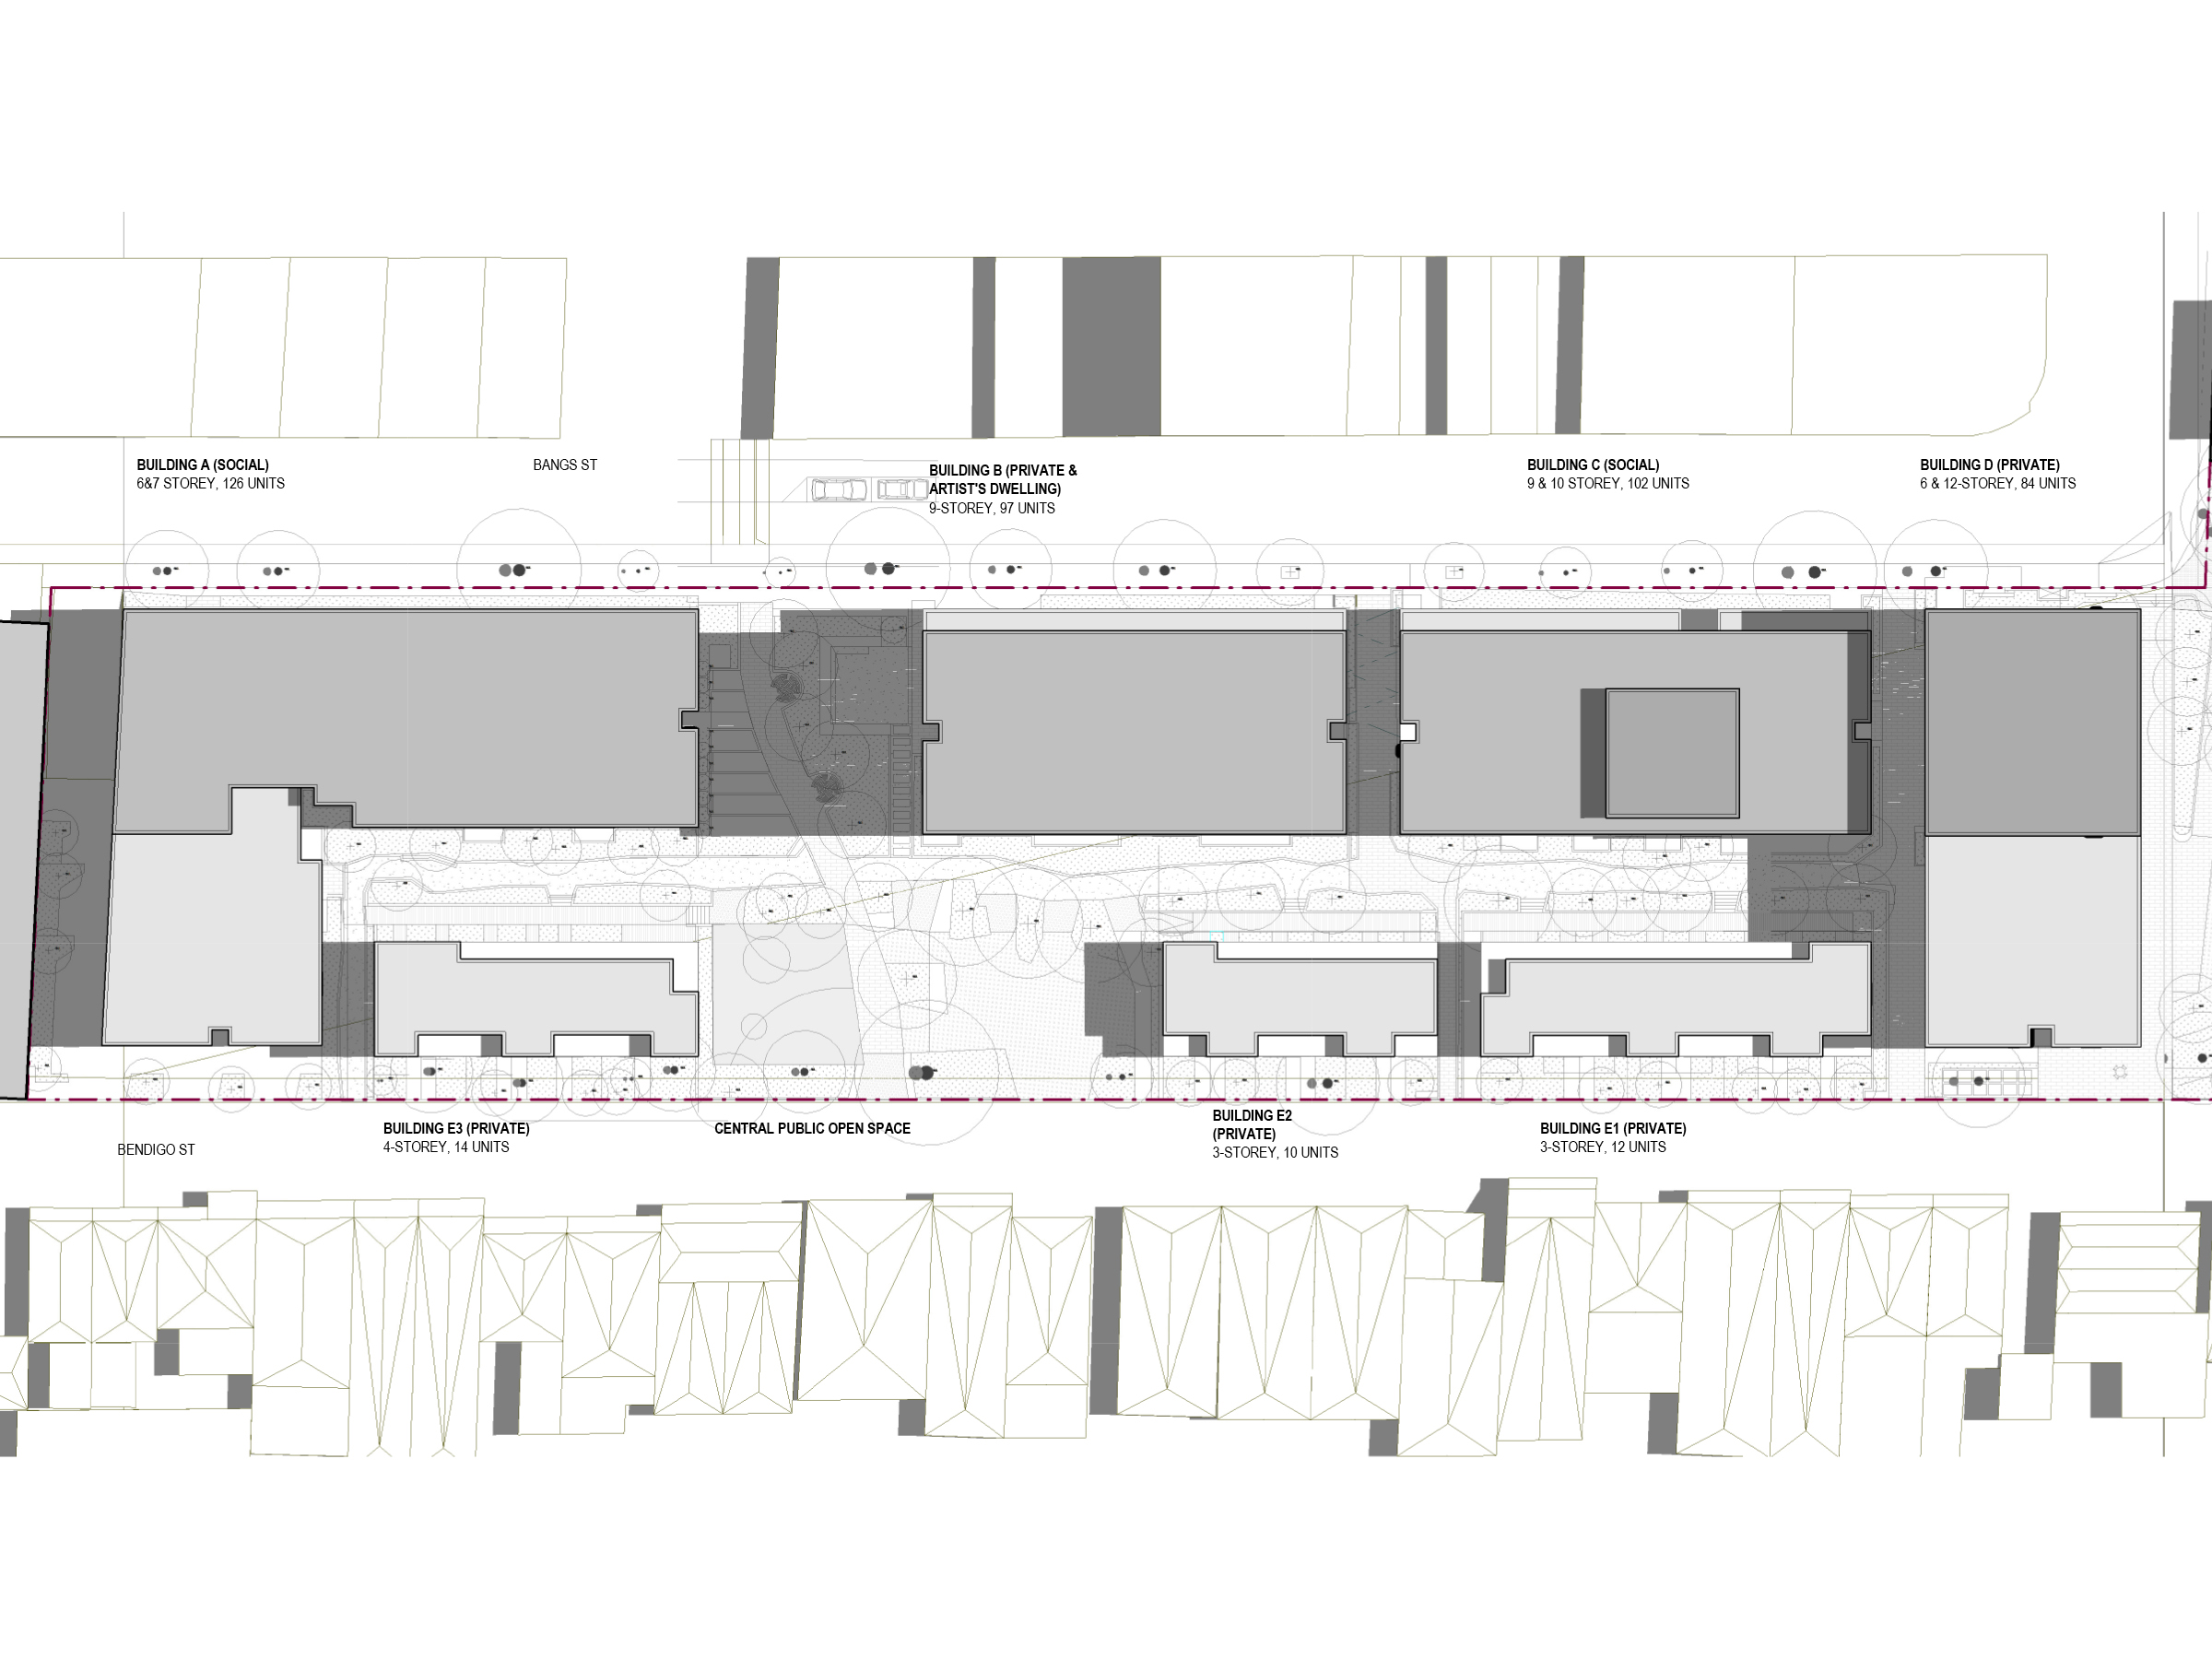 Diagram showing the shadows created by the new development in September at 12pm